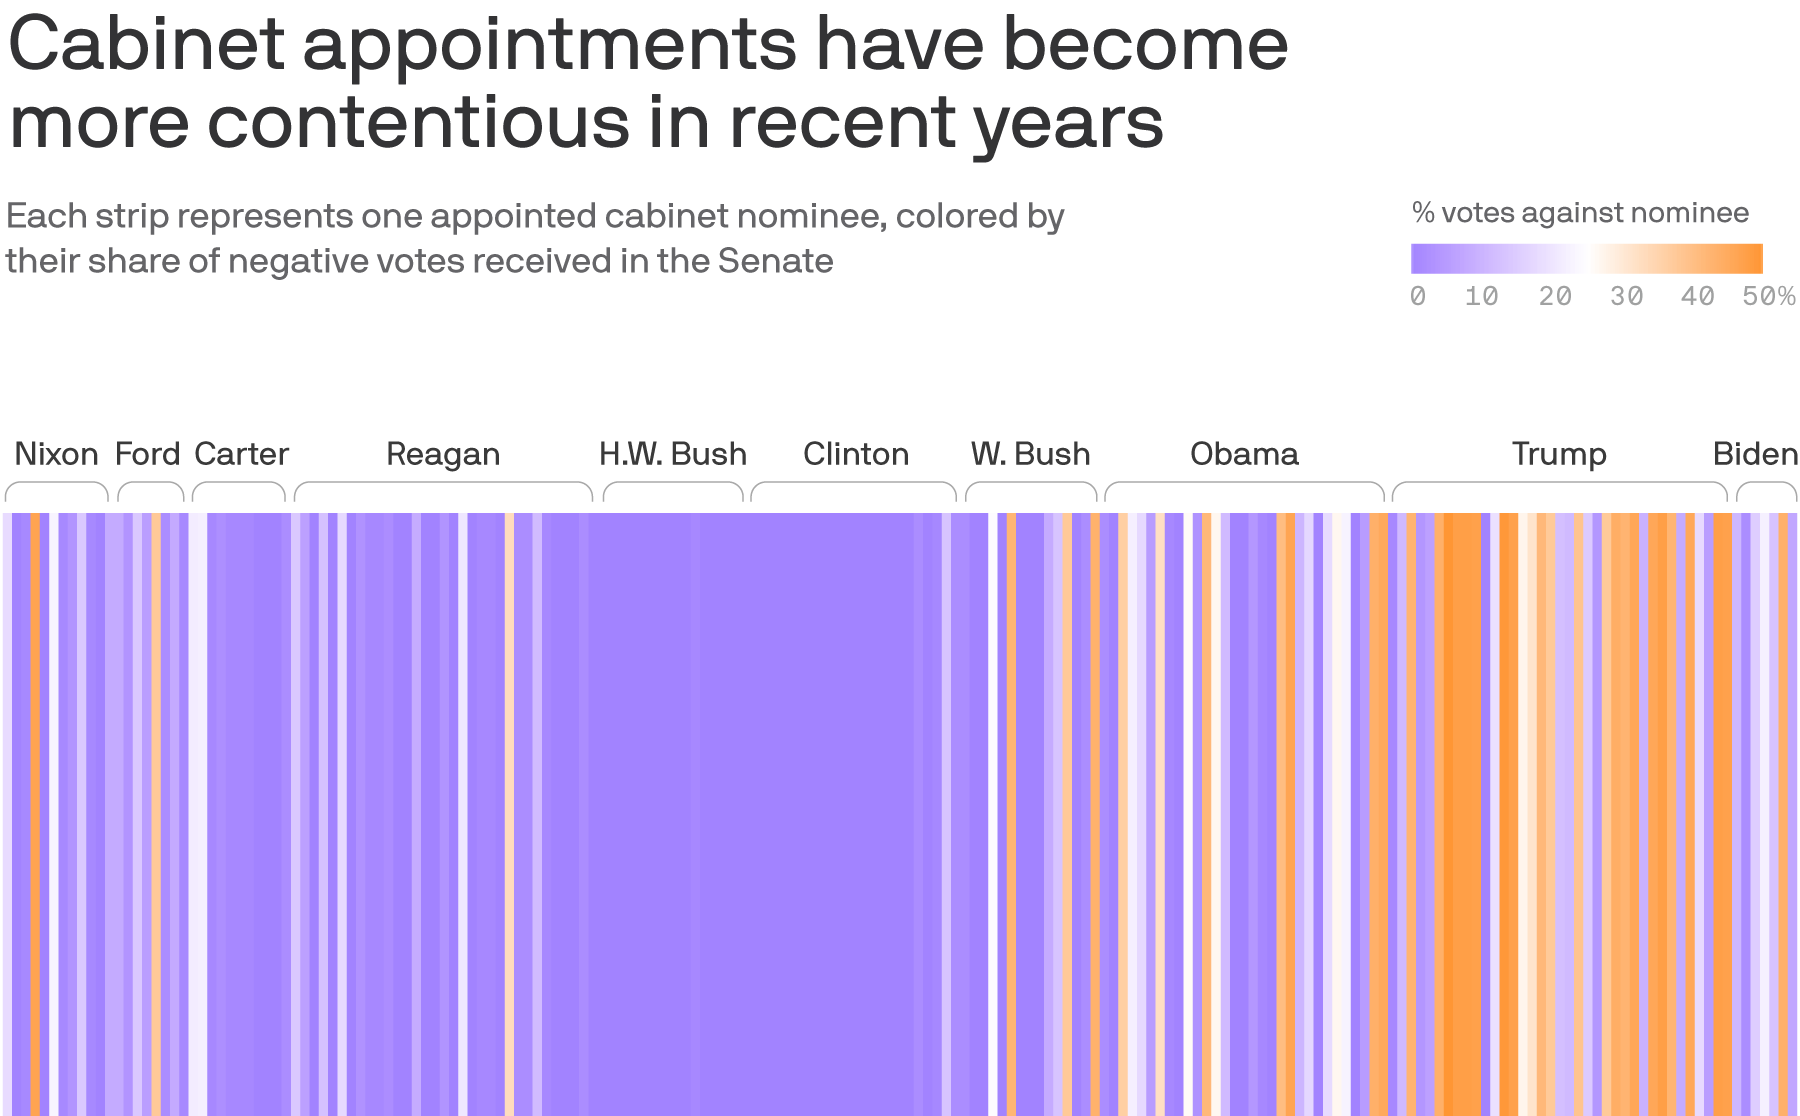 It's getting harder for Cabinet picks to get confirmed, data analysis shows